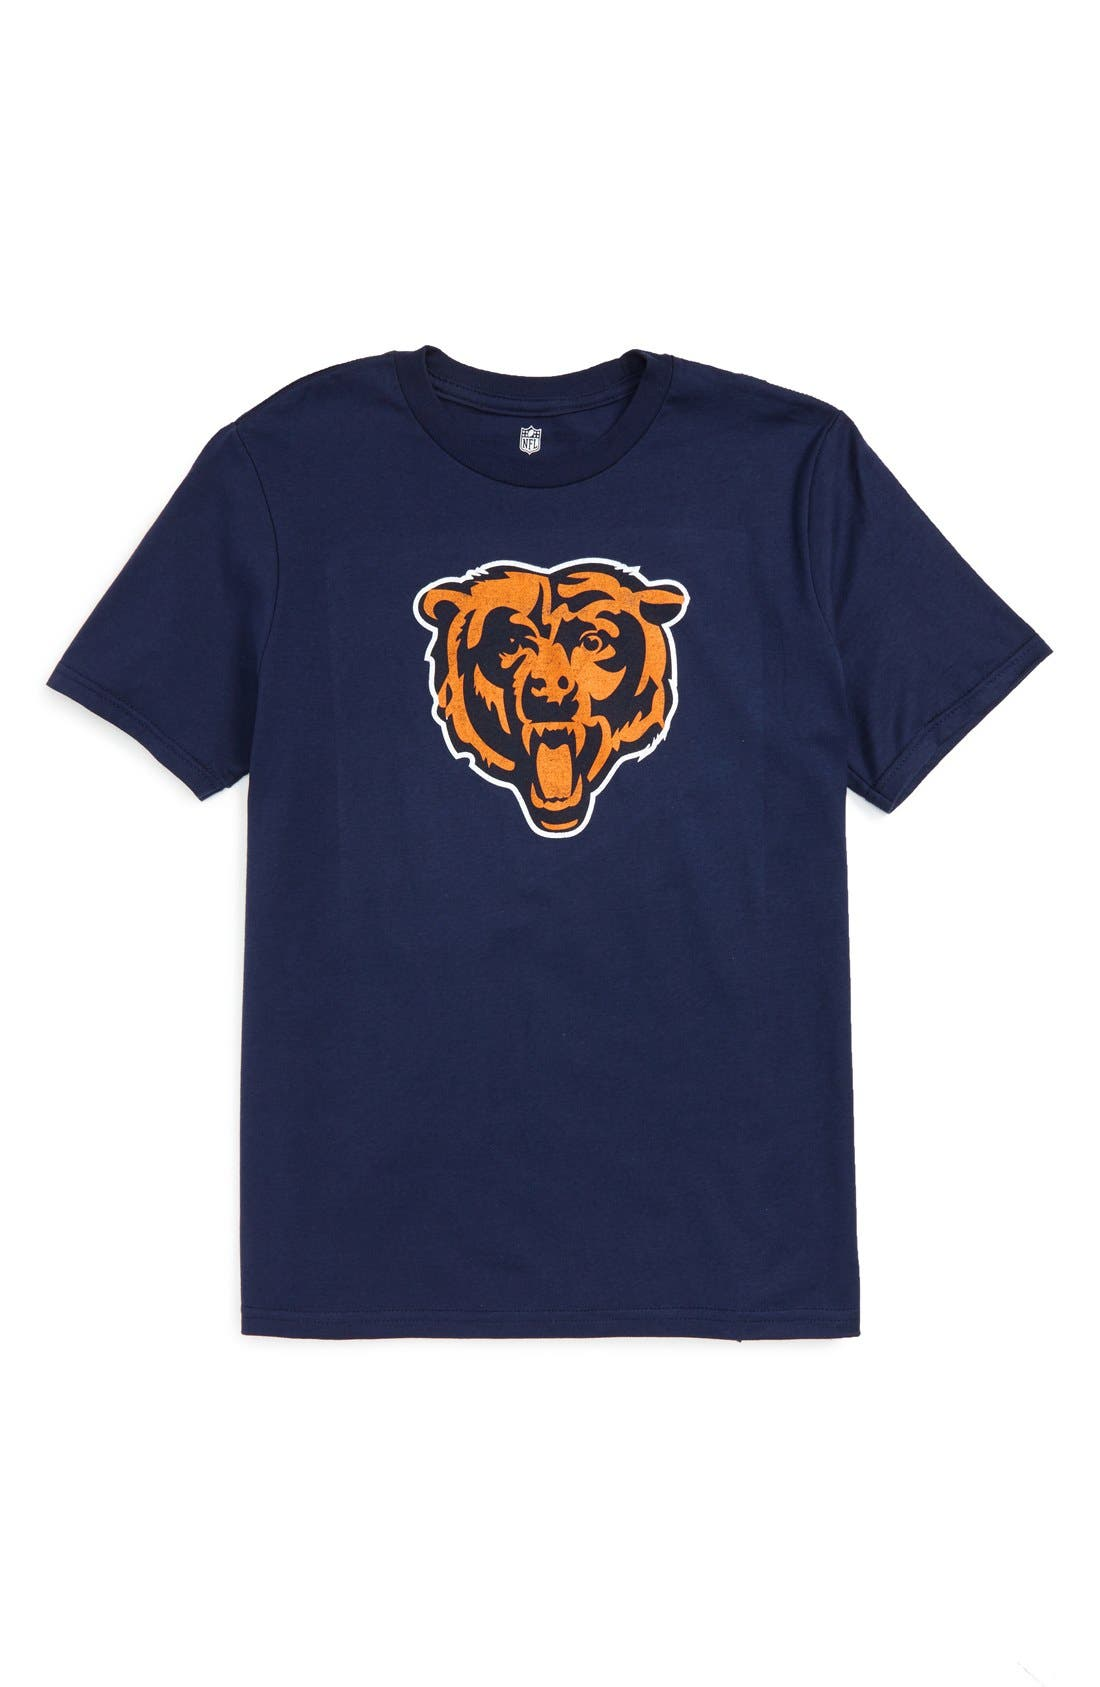 Outerstuff 'NFL - Chicago Bears' Distressed Logo Graphic T-Shirt (Toddler Boys & Little Boys)